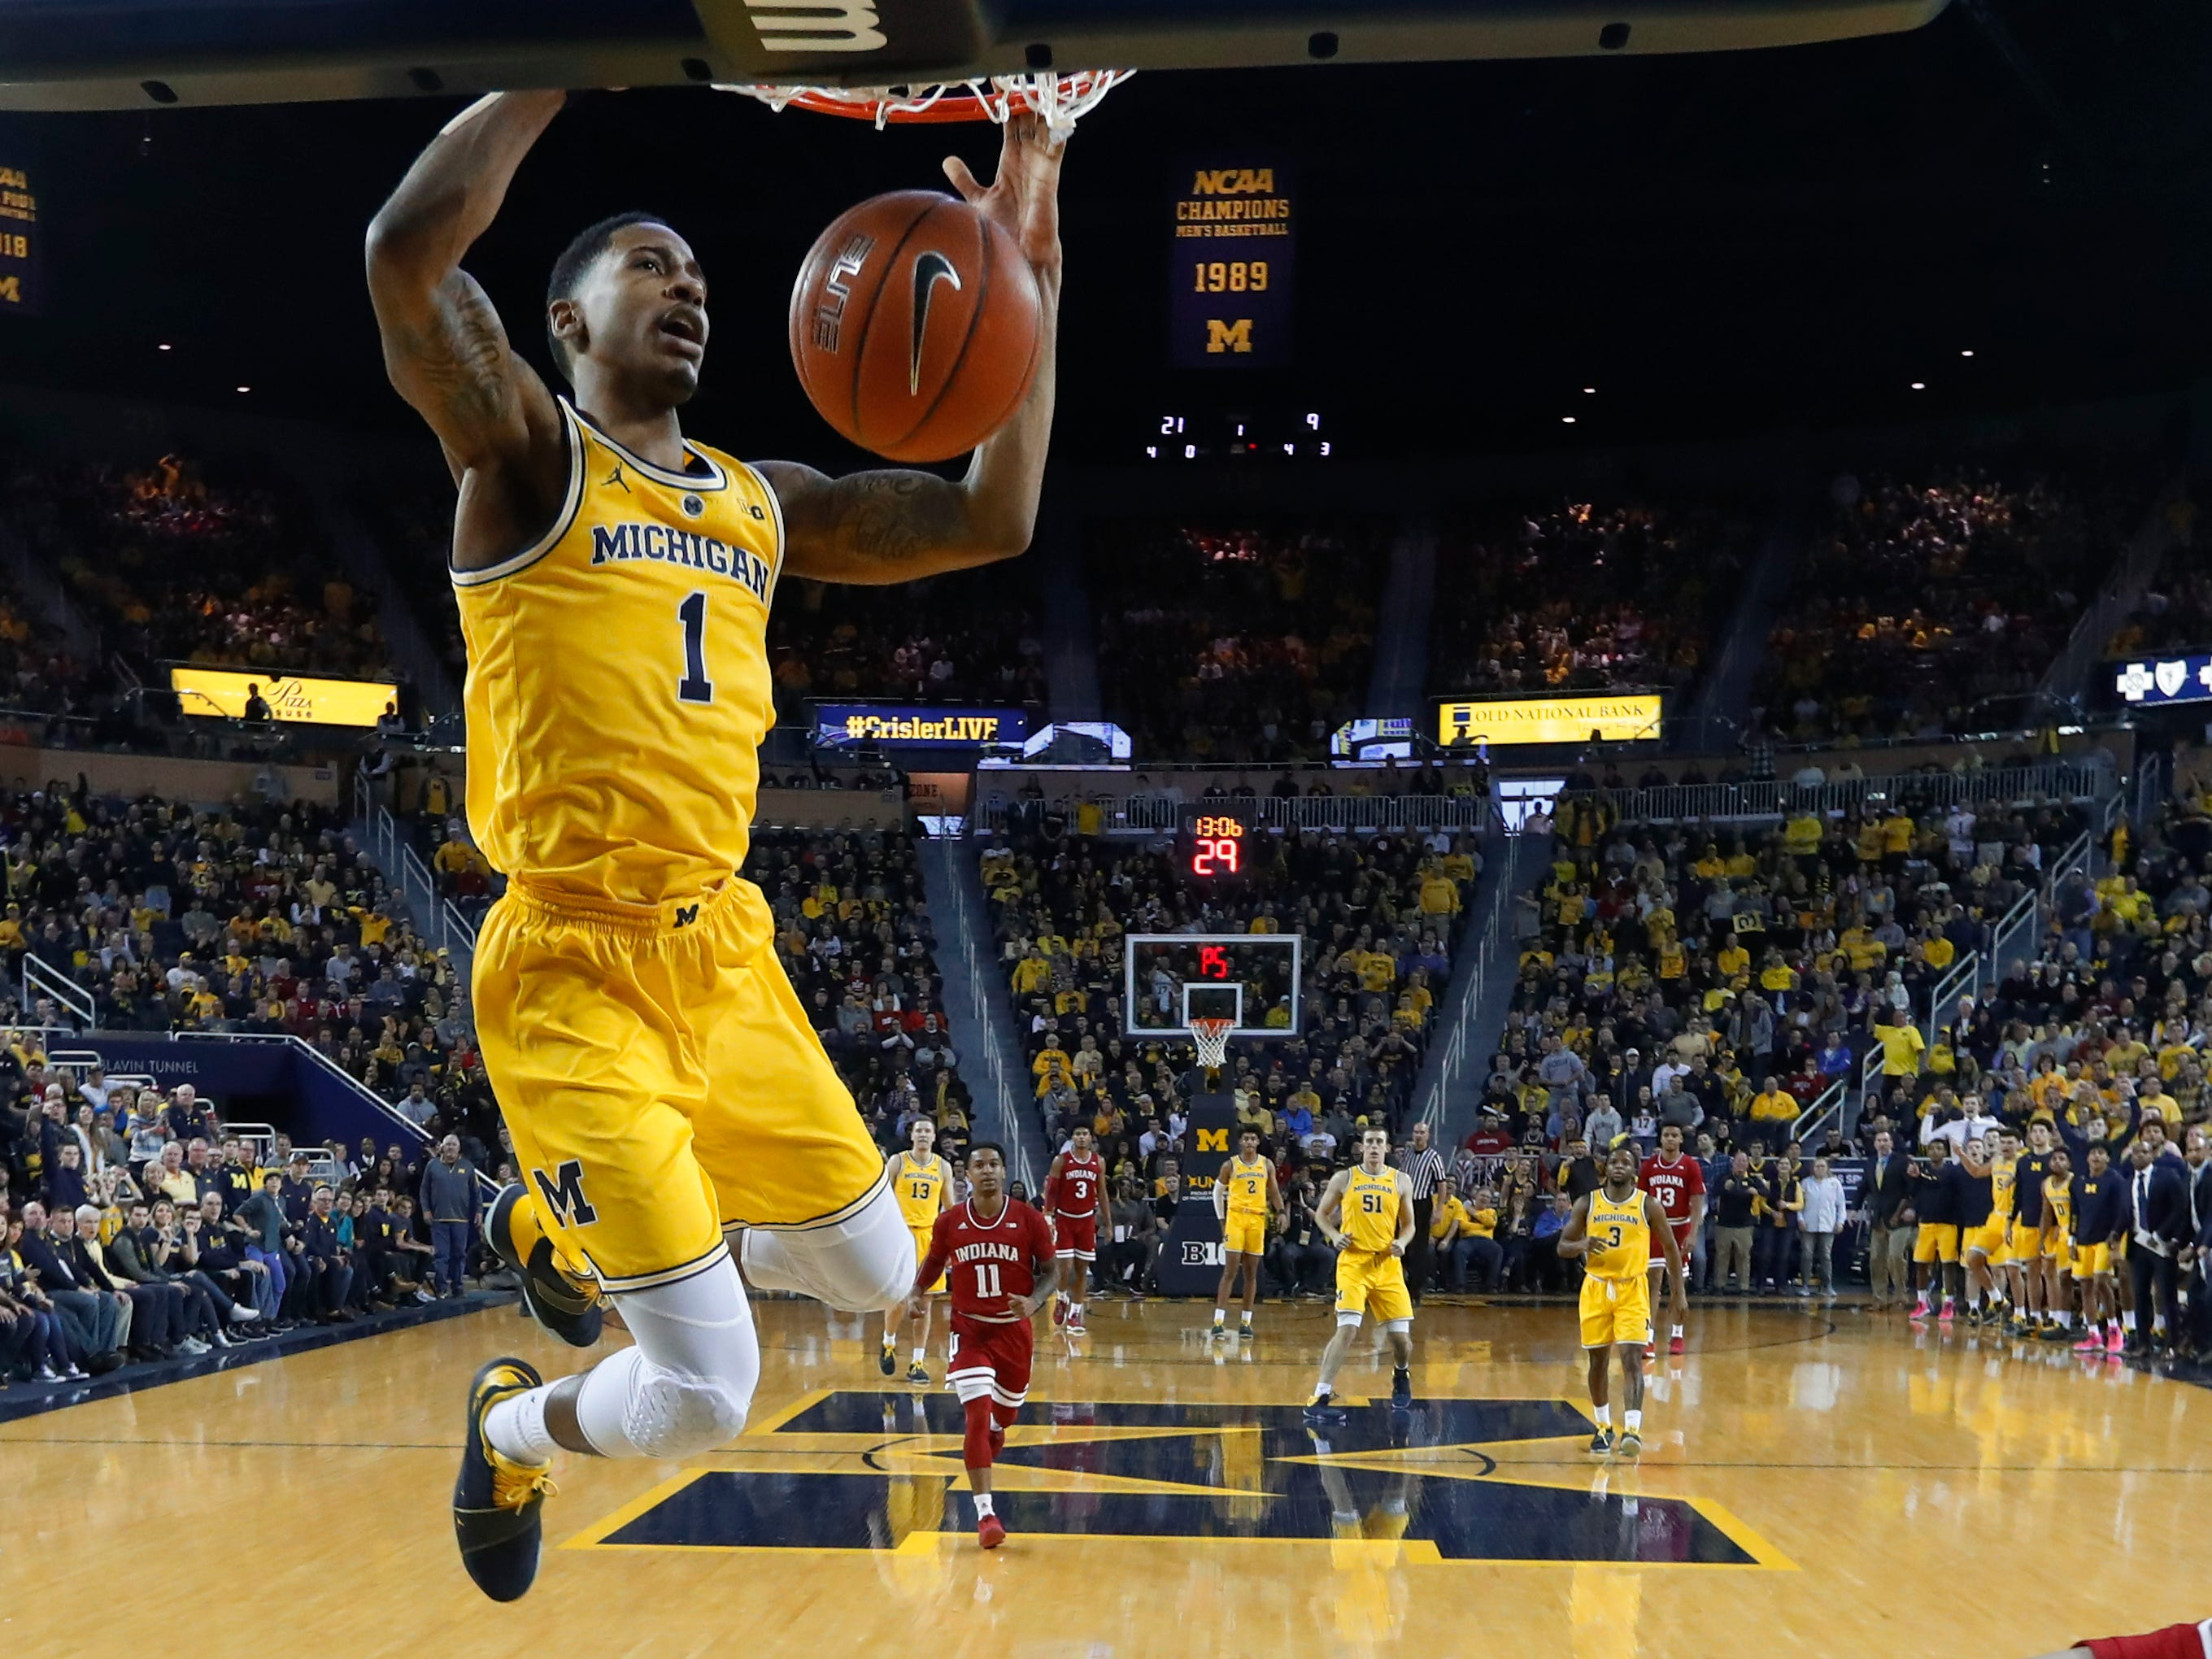 Michigan guard Charles Matthews dunks in the first half of an NCAA college basketball game against Indiana in Ann Arbor, Mich., Sunday, Jan. 6, 2019.